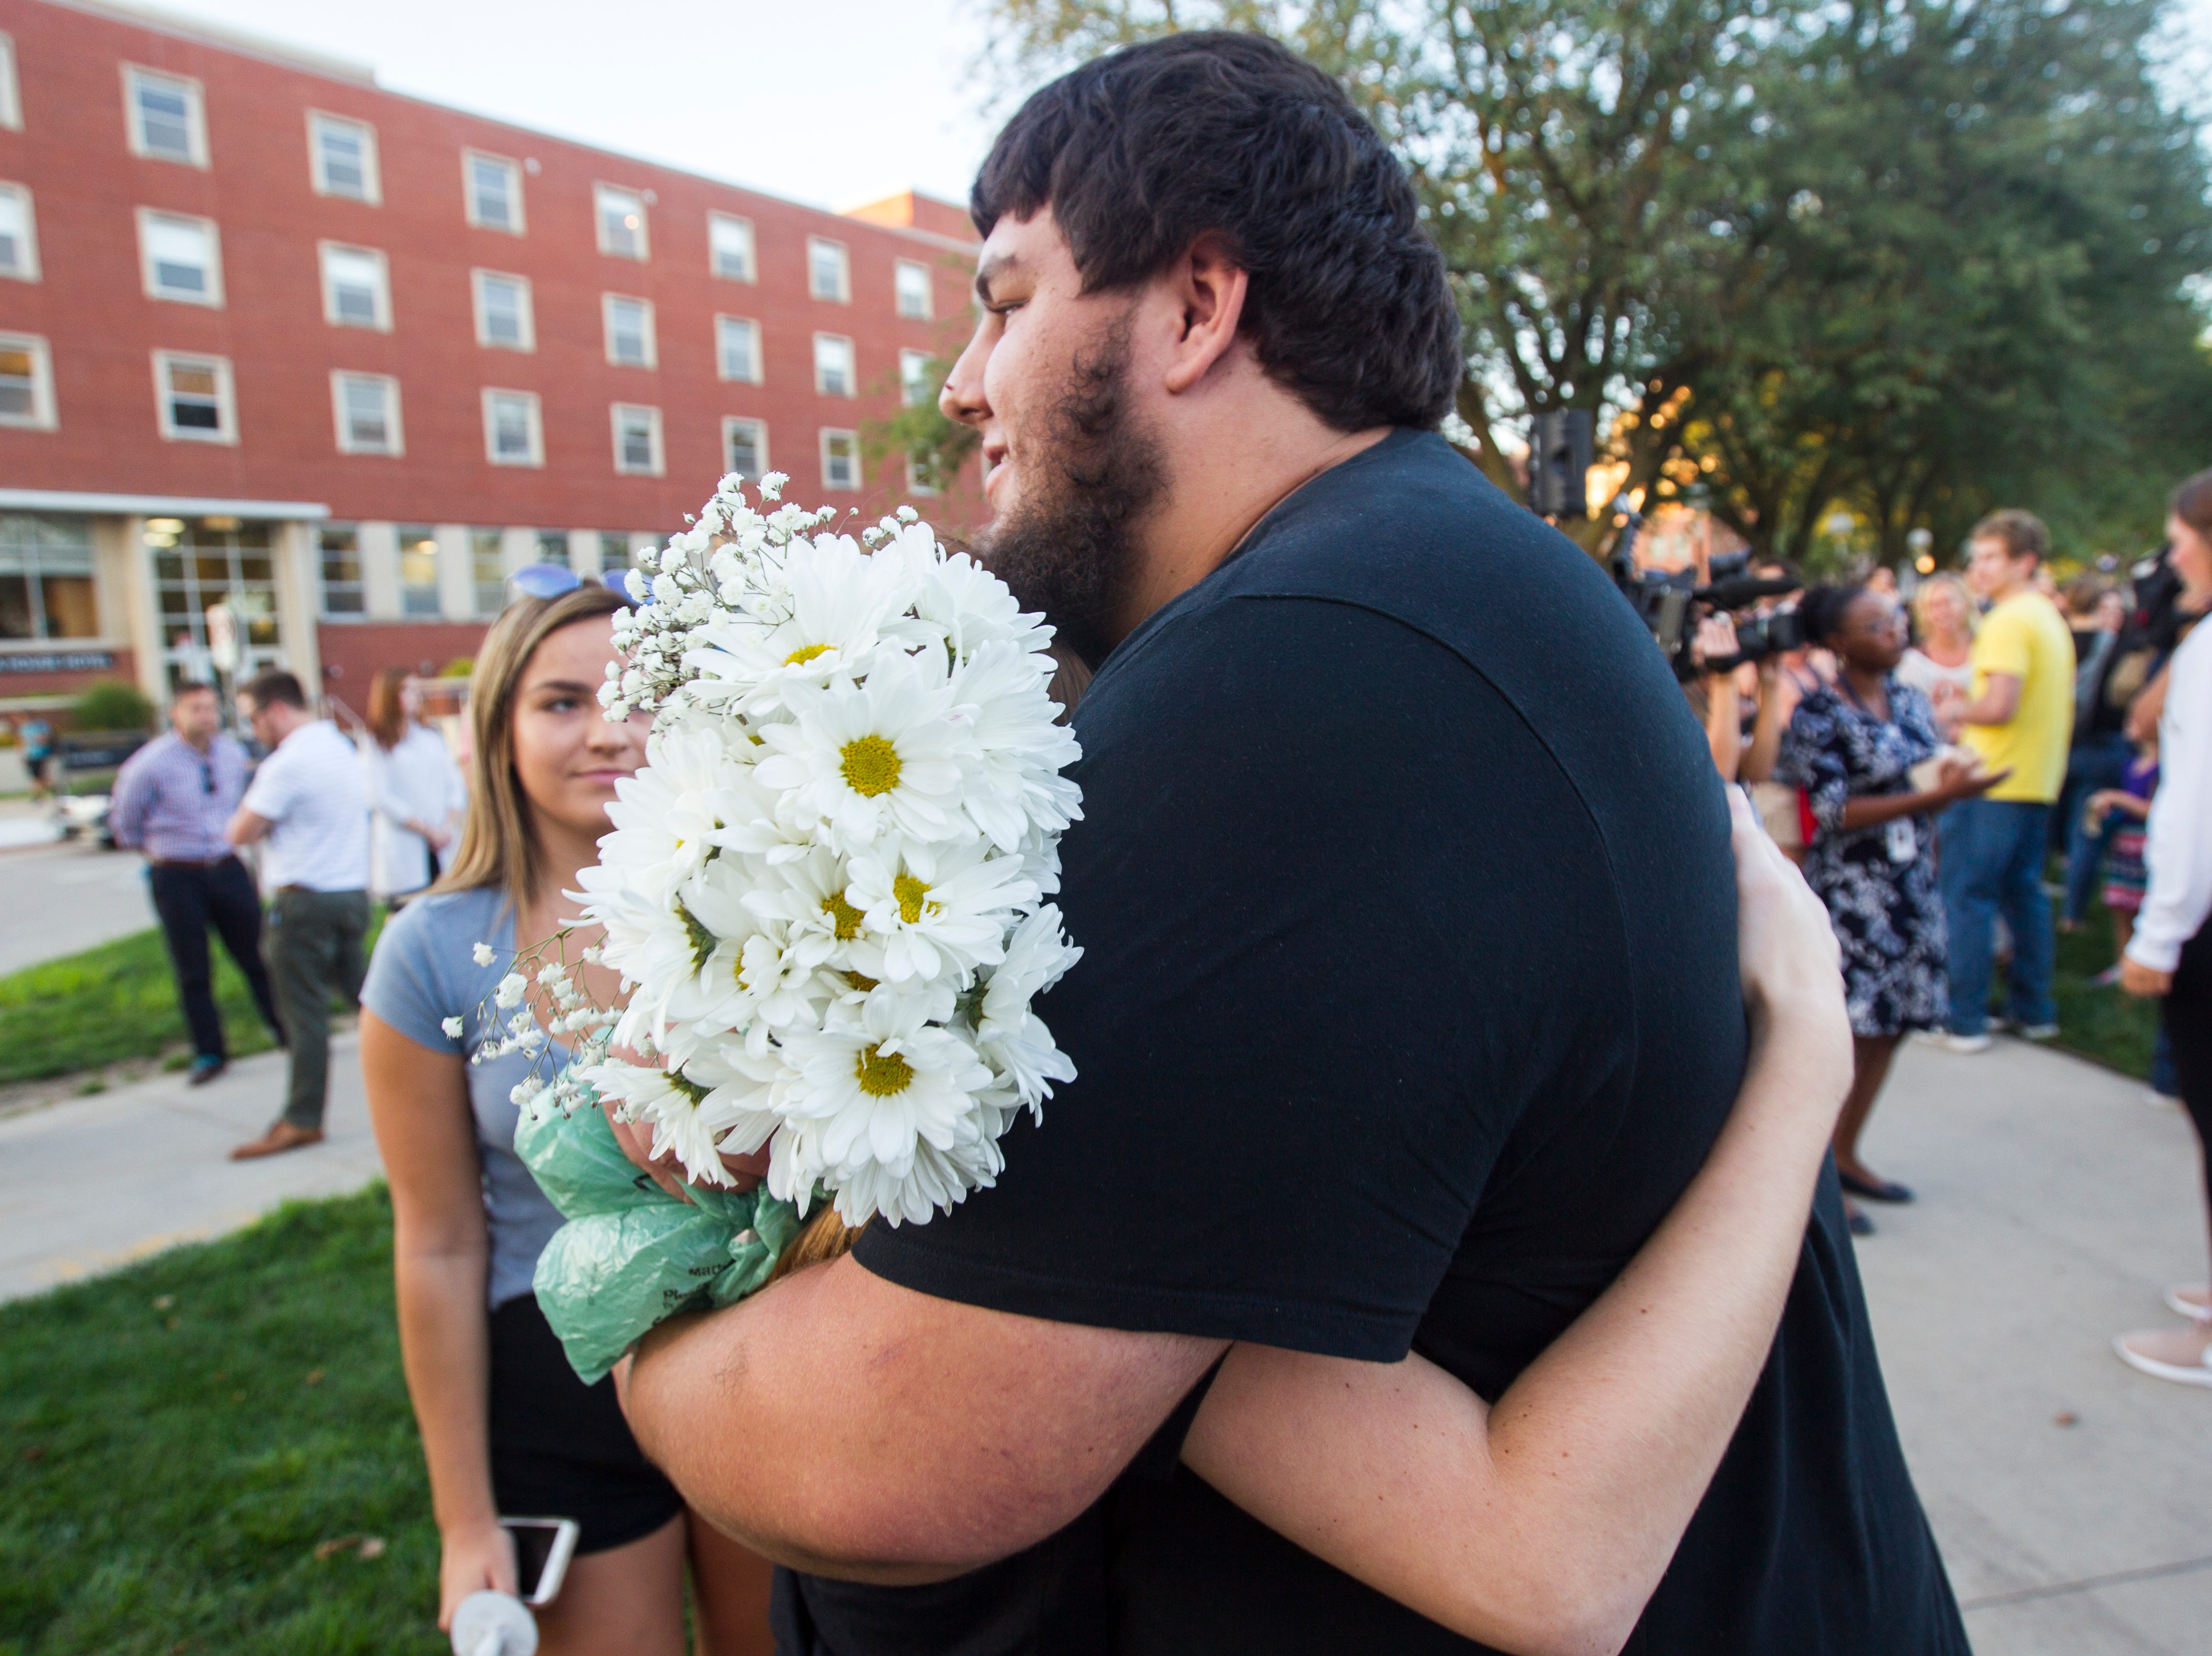 A supporter embraces Jake Tibbetts, the brother of Mollie Tibbetts, during a vigil for Mollie Tibbetts on Wednesday, Aug. 22, 2018, in Hubbard Park on the University of Iowa campus in Iowa City.